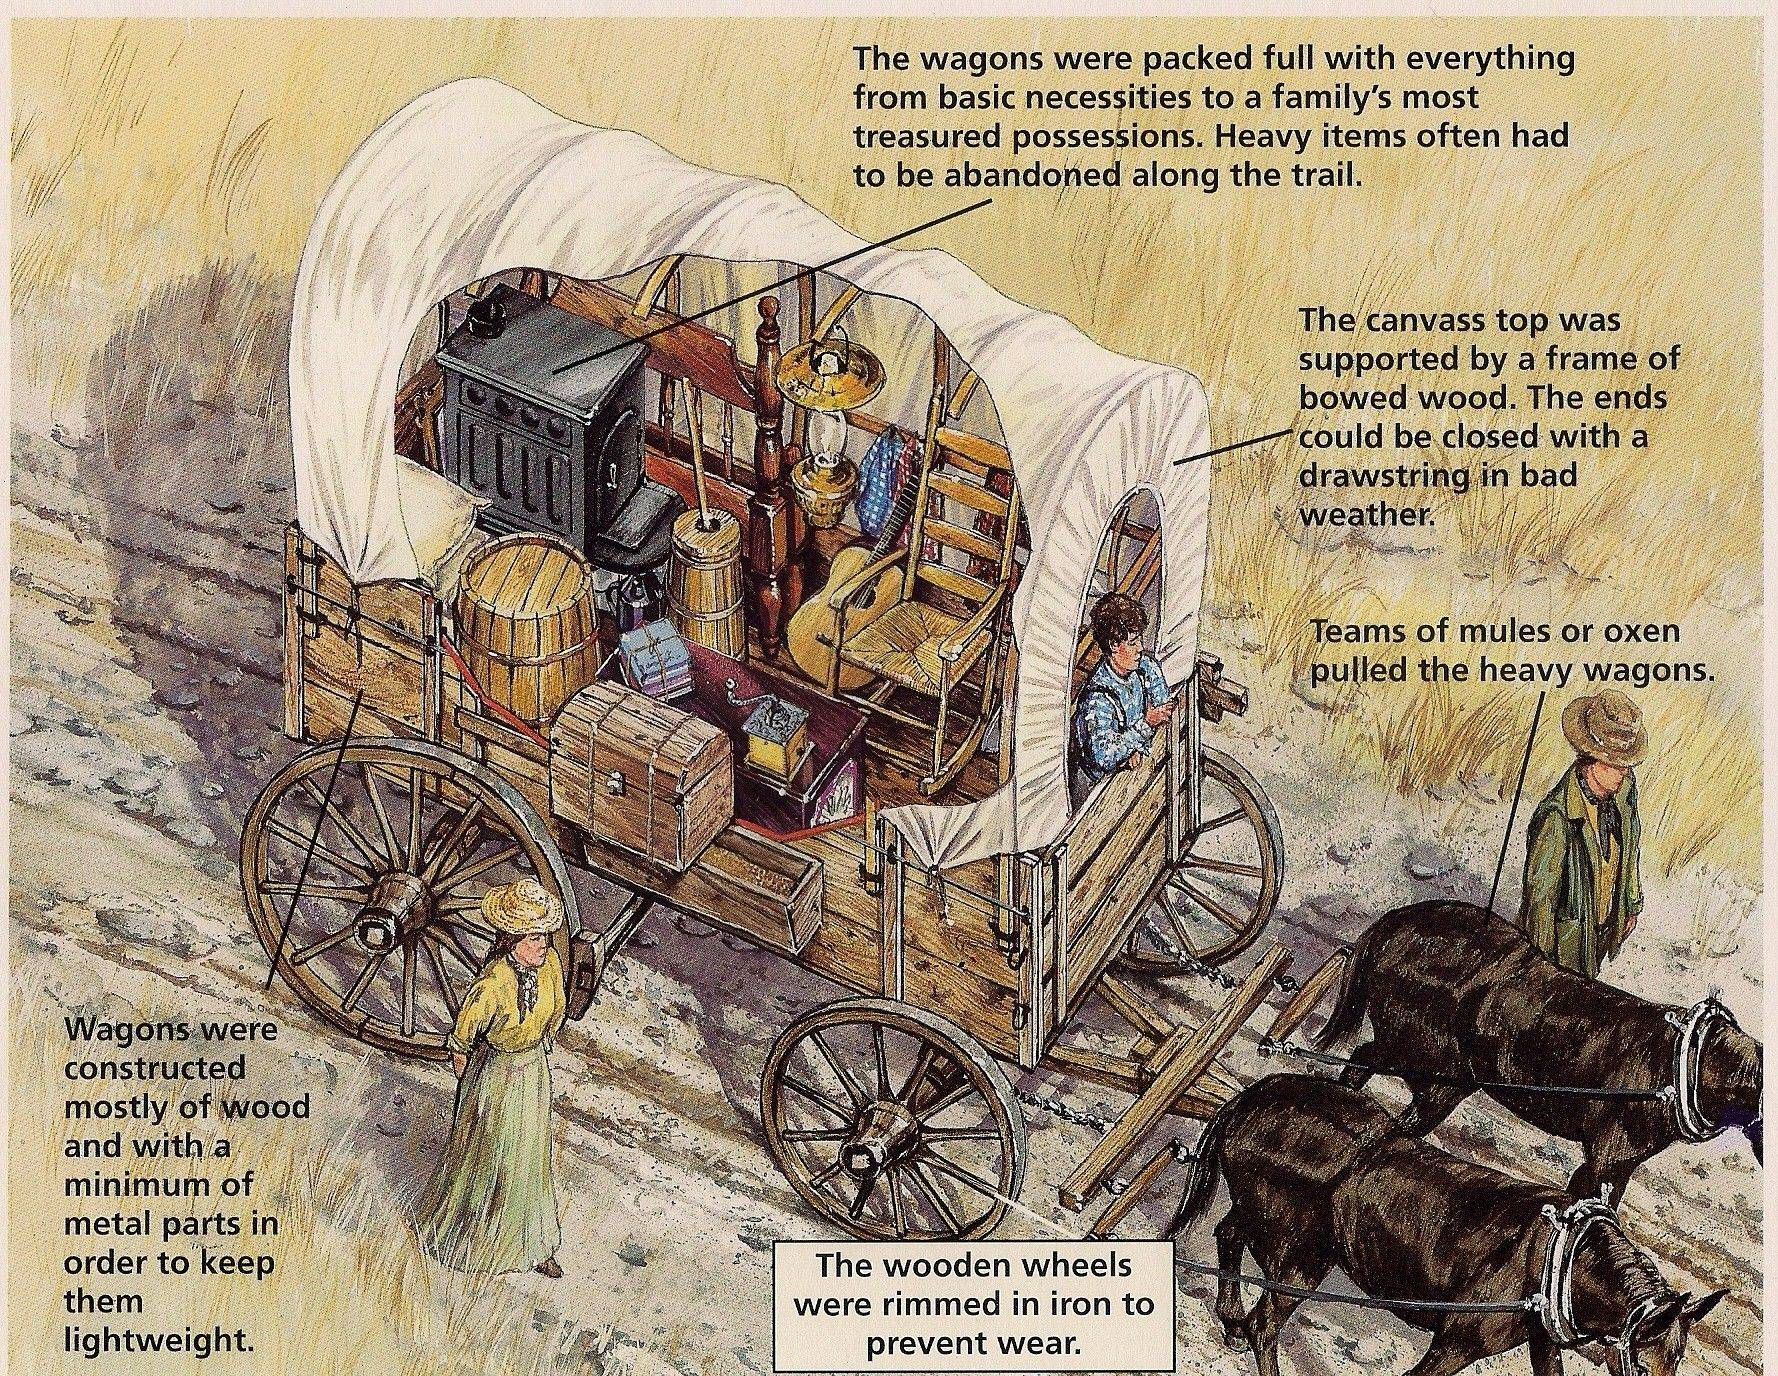 Drawing of a covered wagon with the inside supplies